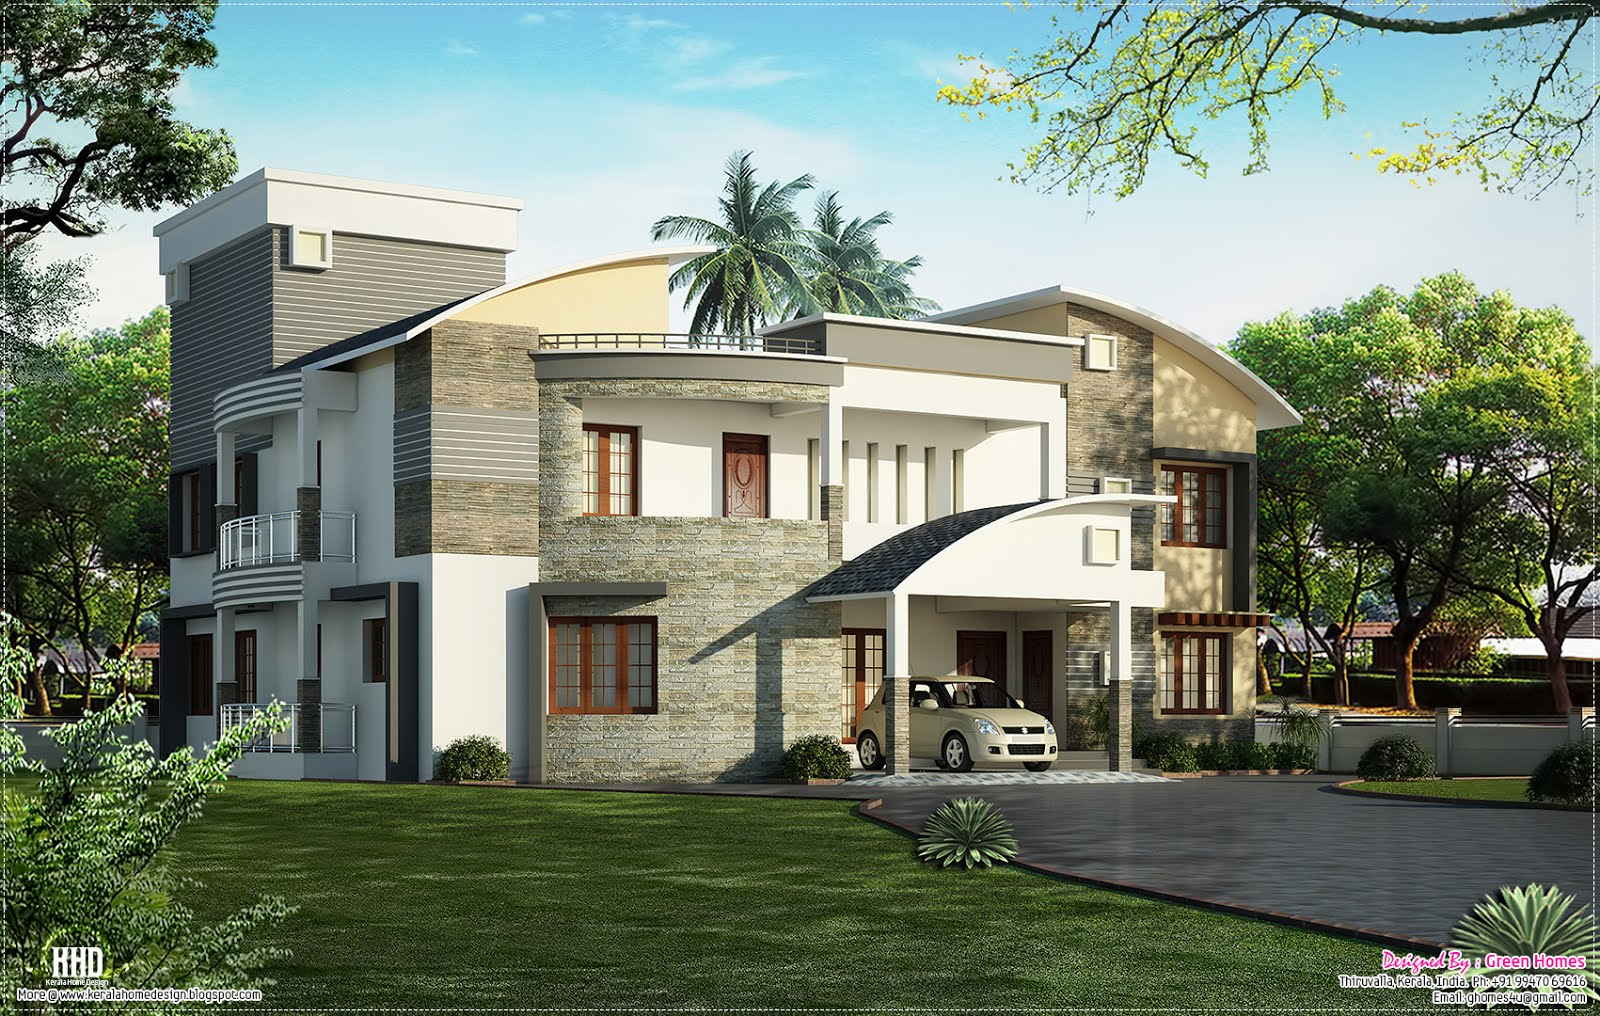 Modern luxury villa design kerala home design and floor for Modern luxury house plans and designs